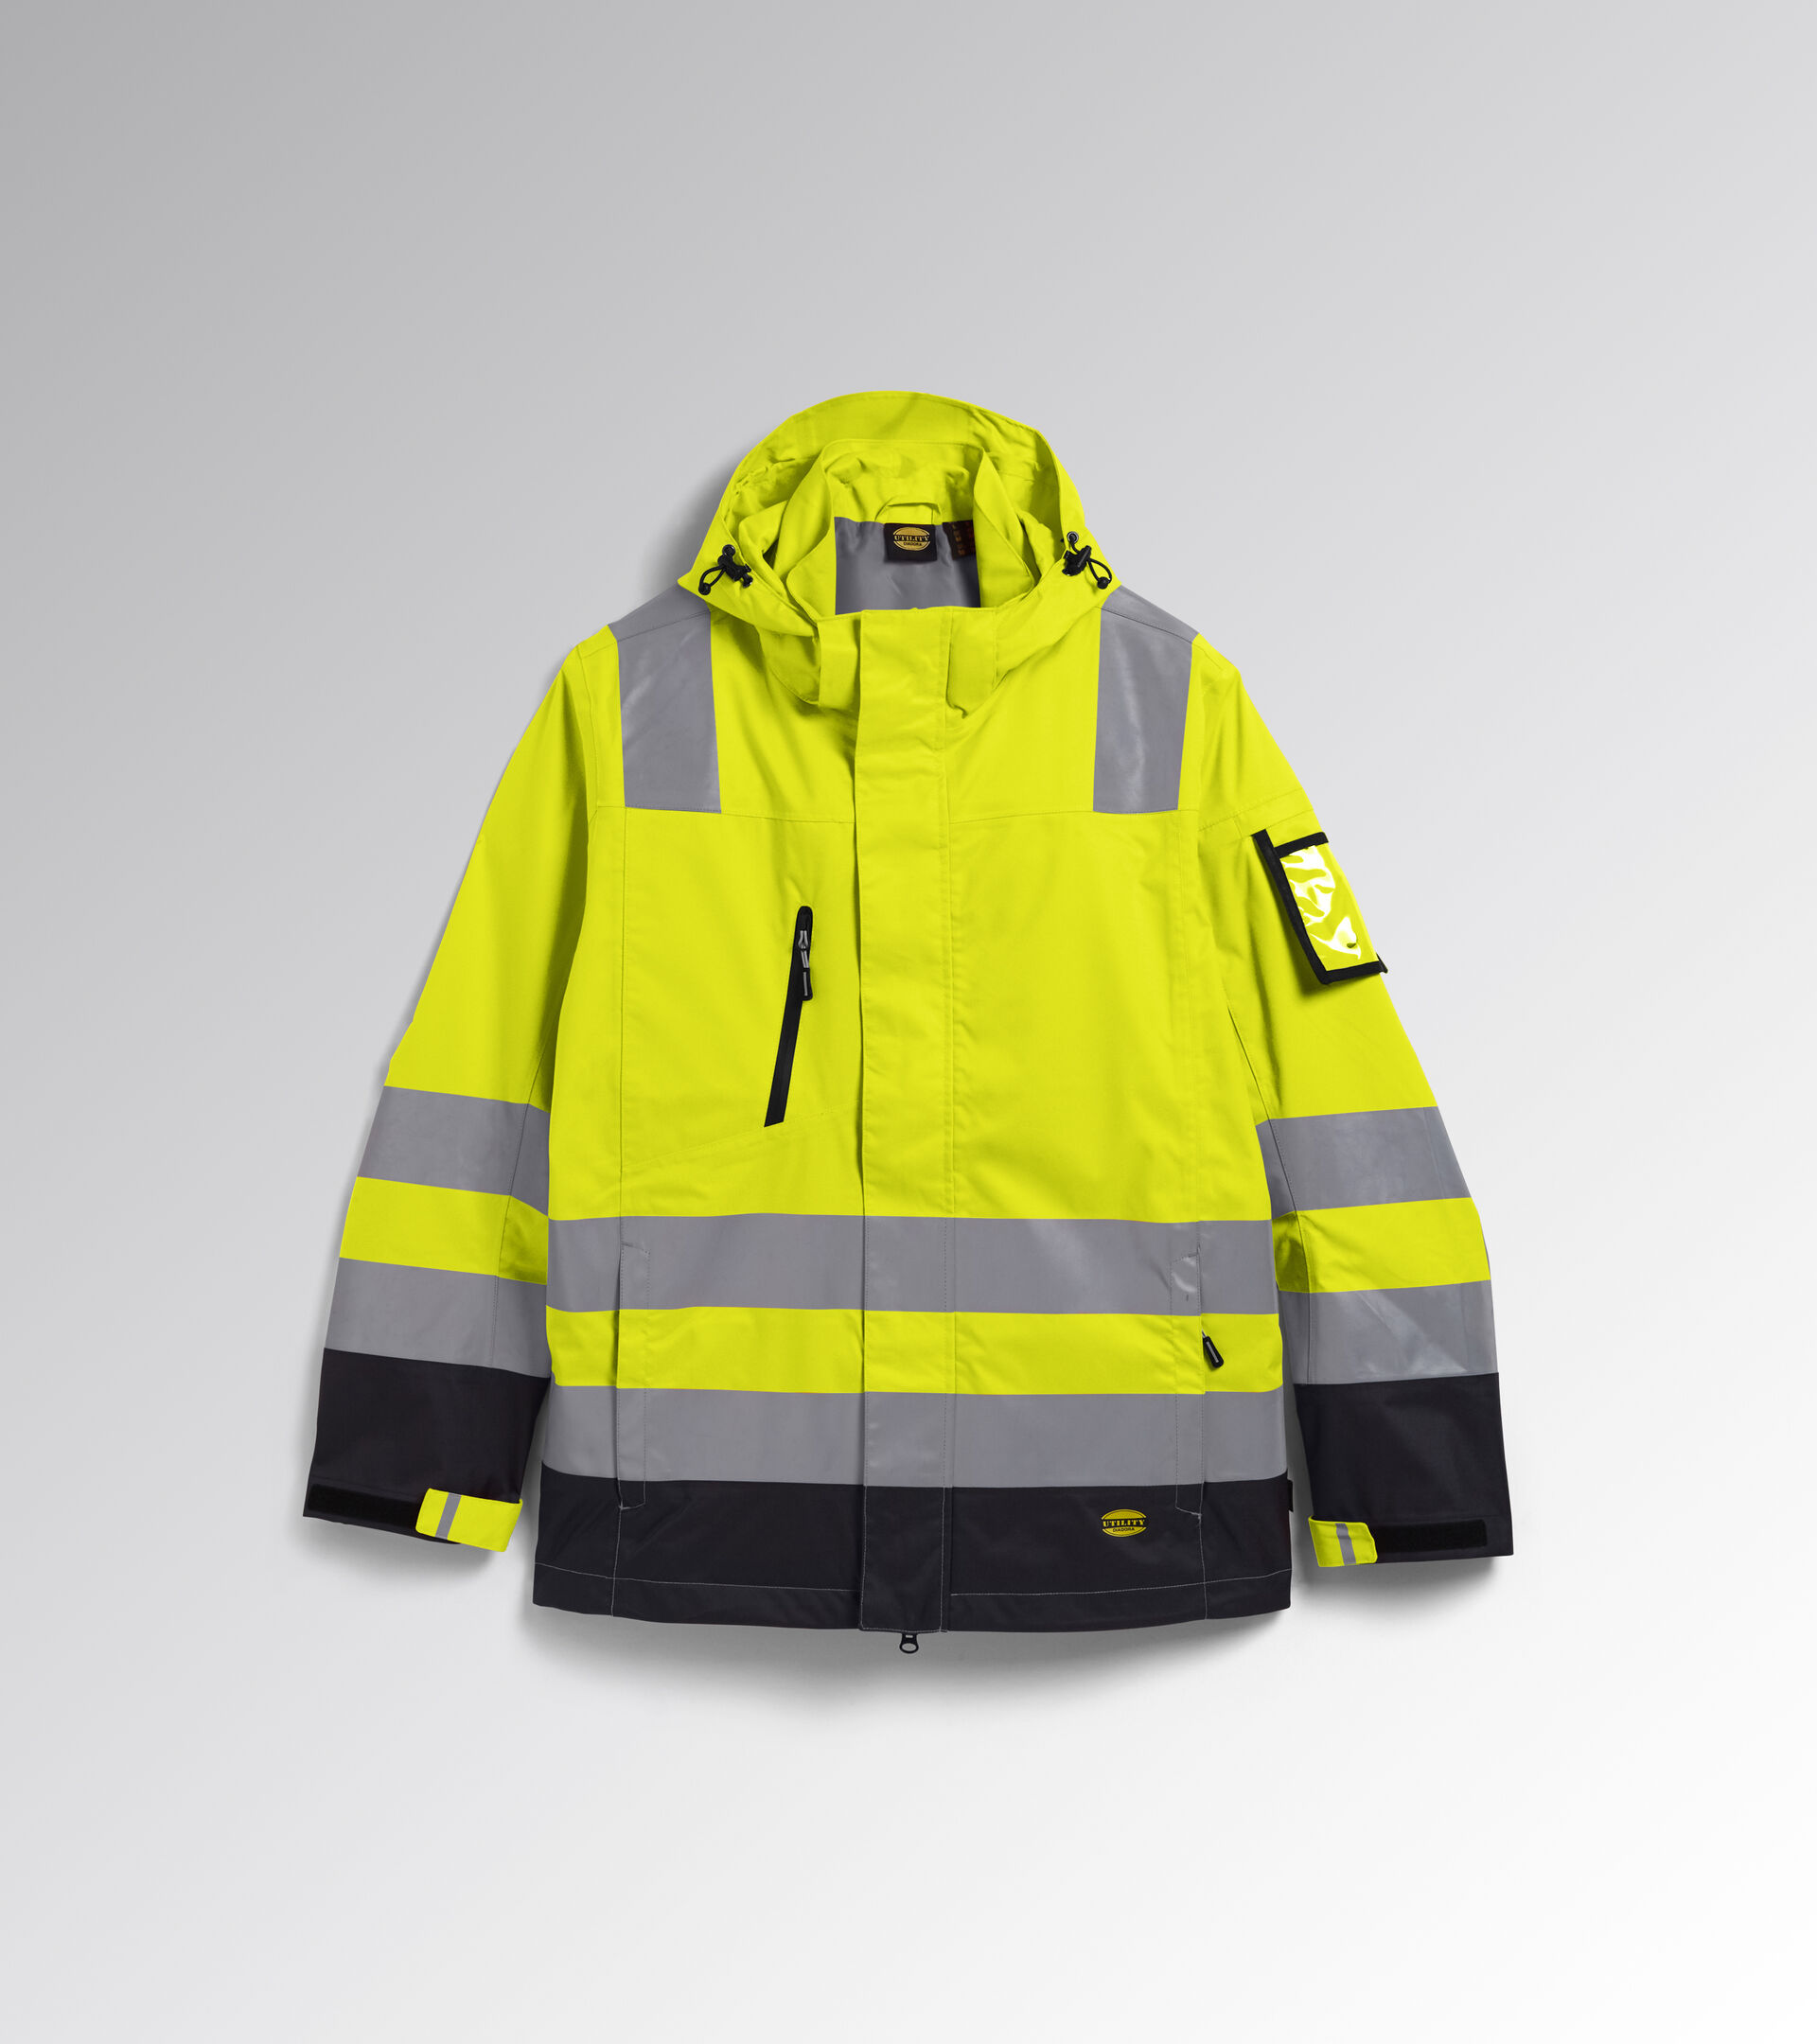 Apparel Utility UOMO HV JACKET ISO 20471 EXTERNAL SHELL FLUORESCENT YELLOW ISO20471 Utility